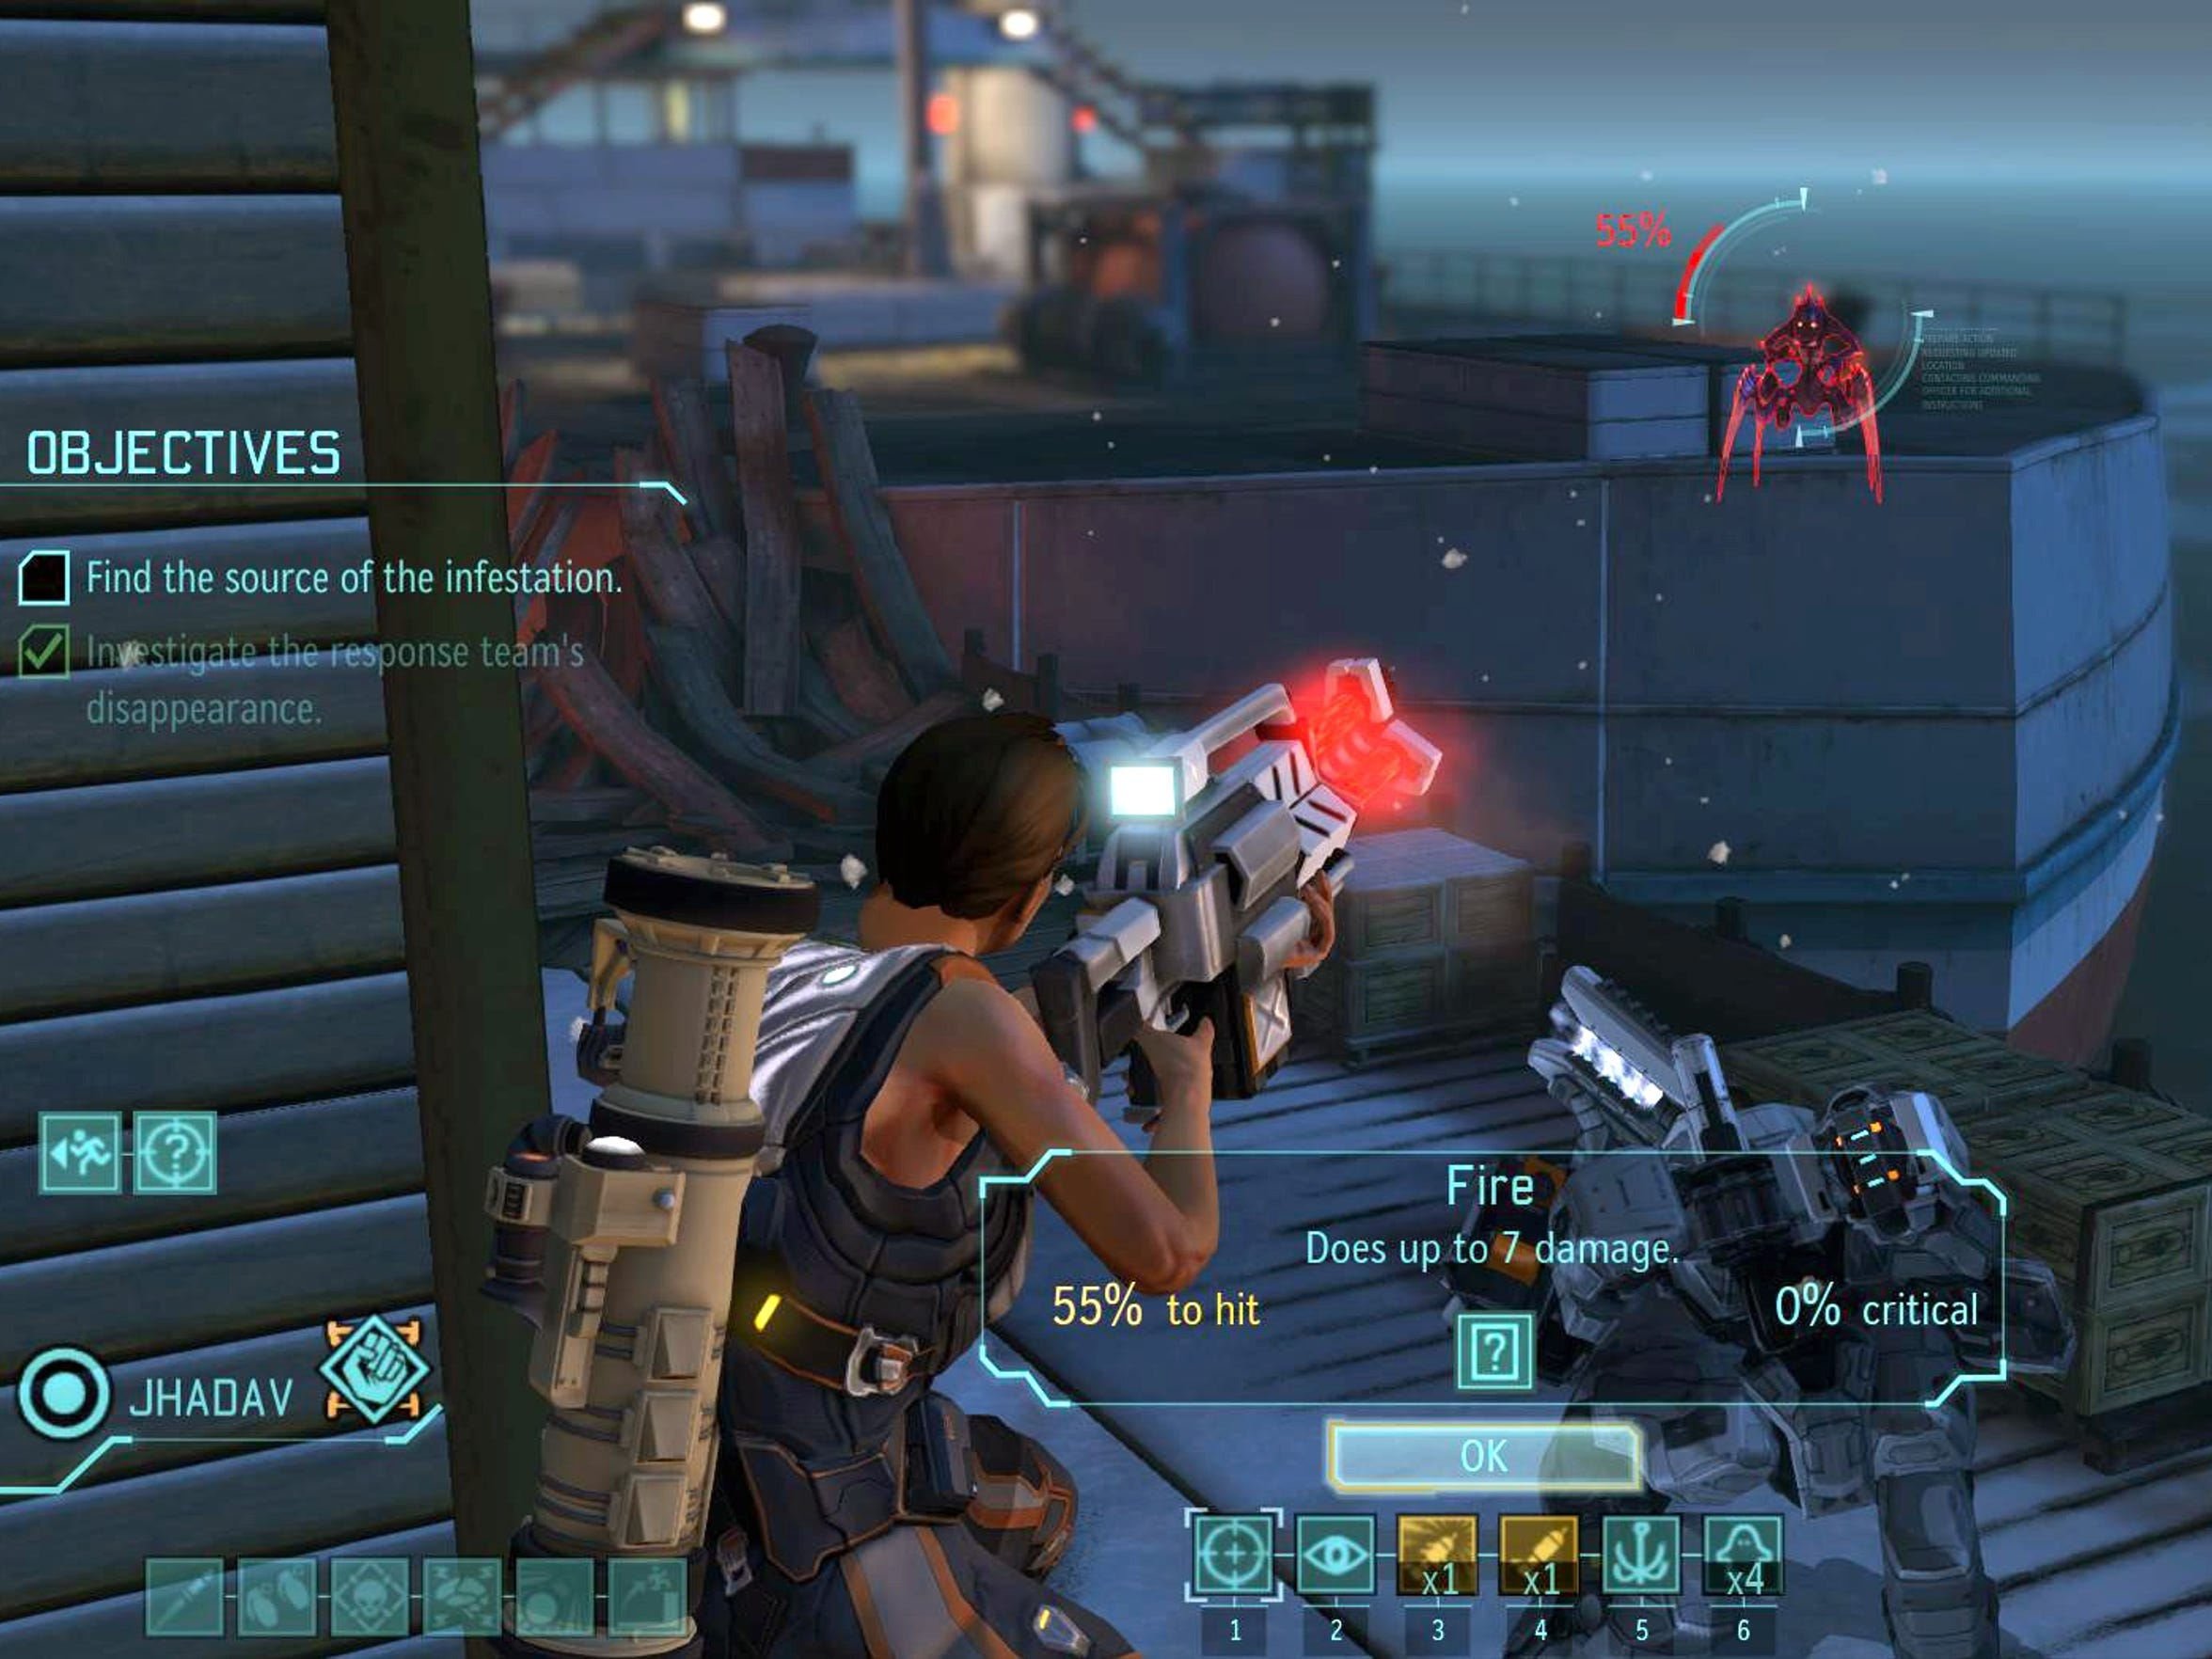 Take the fight back to the aliens in tactical strategy game XCOM 2.